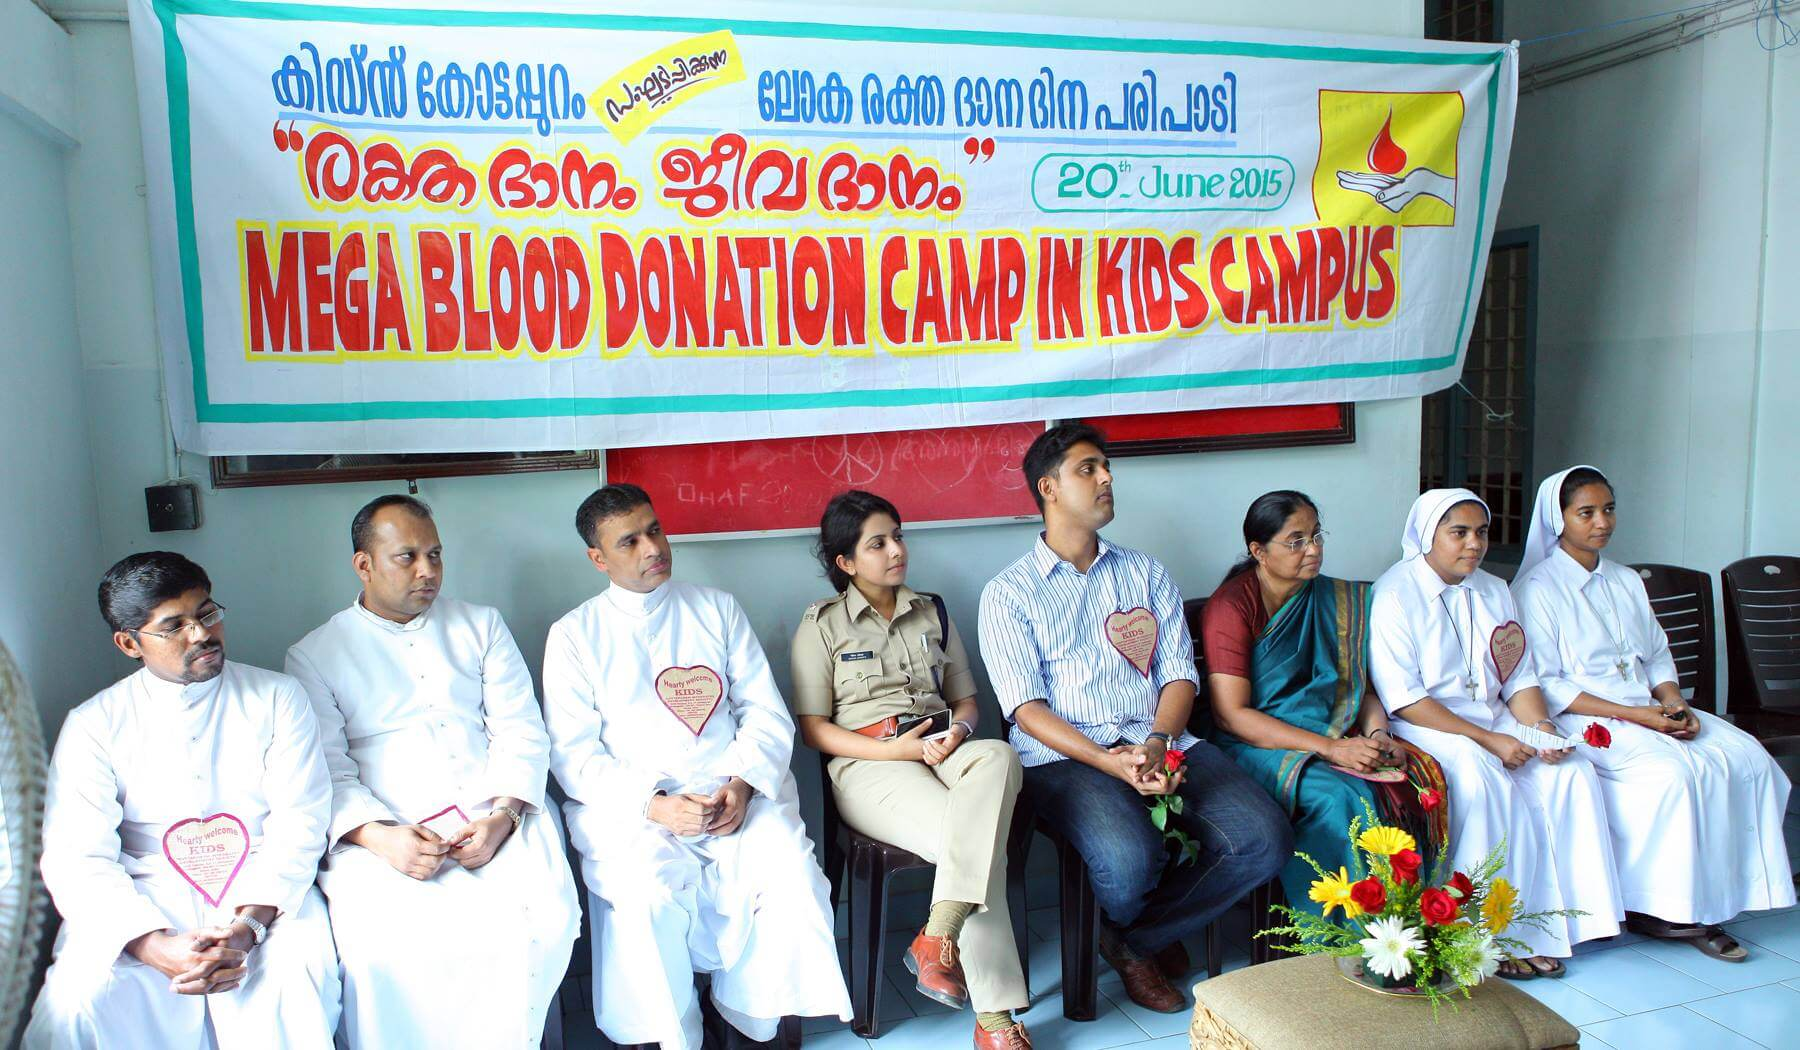 Inauguration-of-the-MEGA-BLOOD-DONATION-CAMP-IN-KIDS-CAMPUS-Merin-joseph